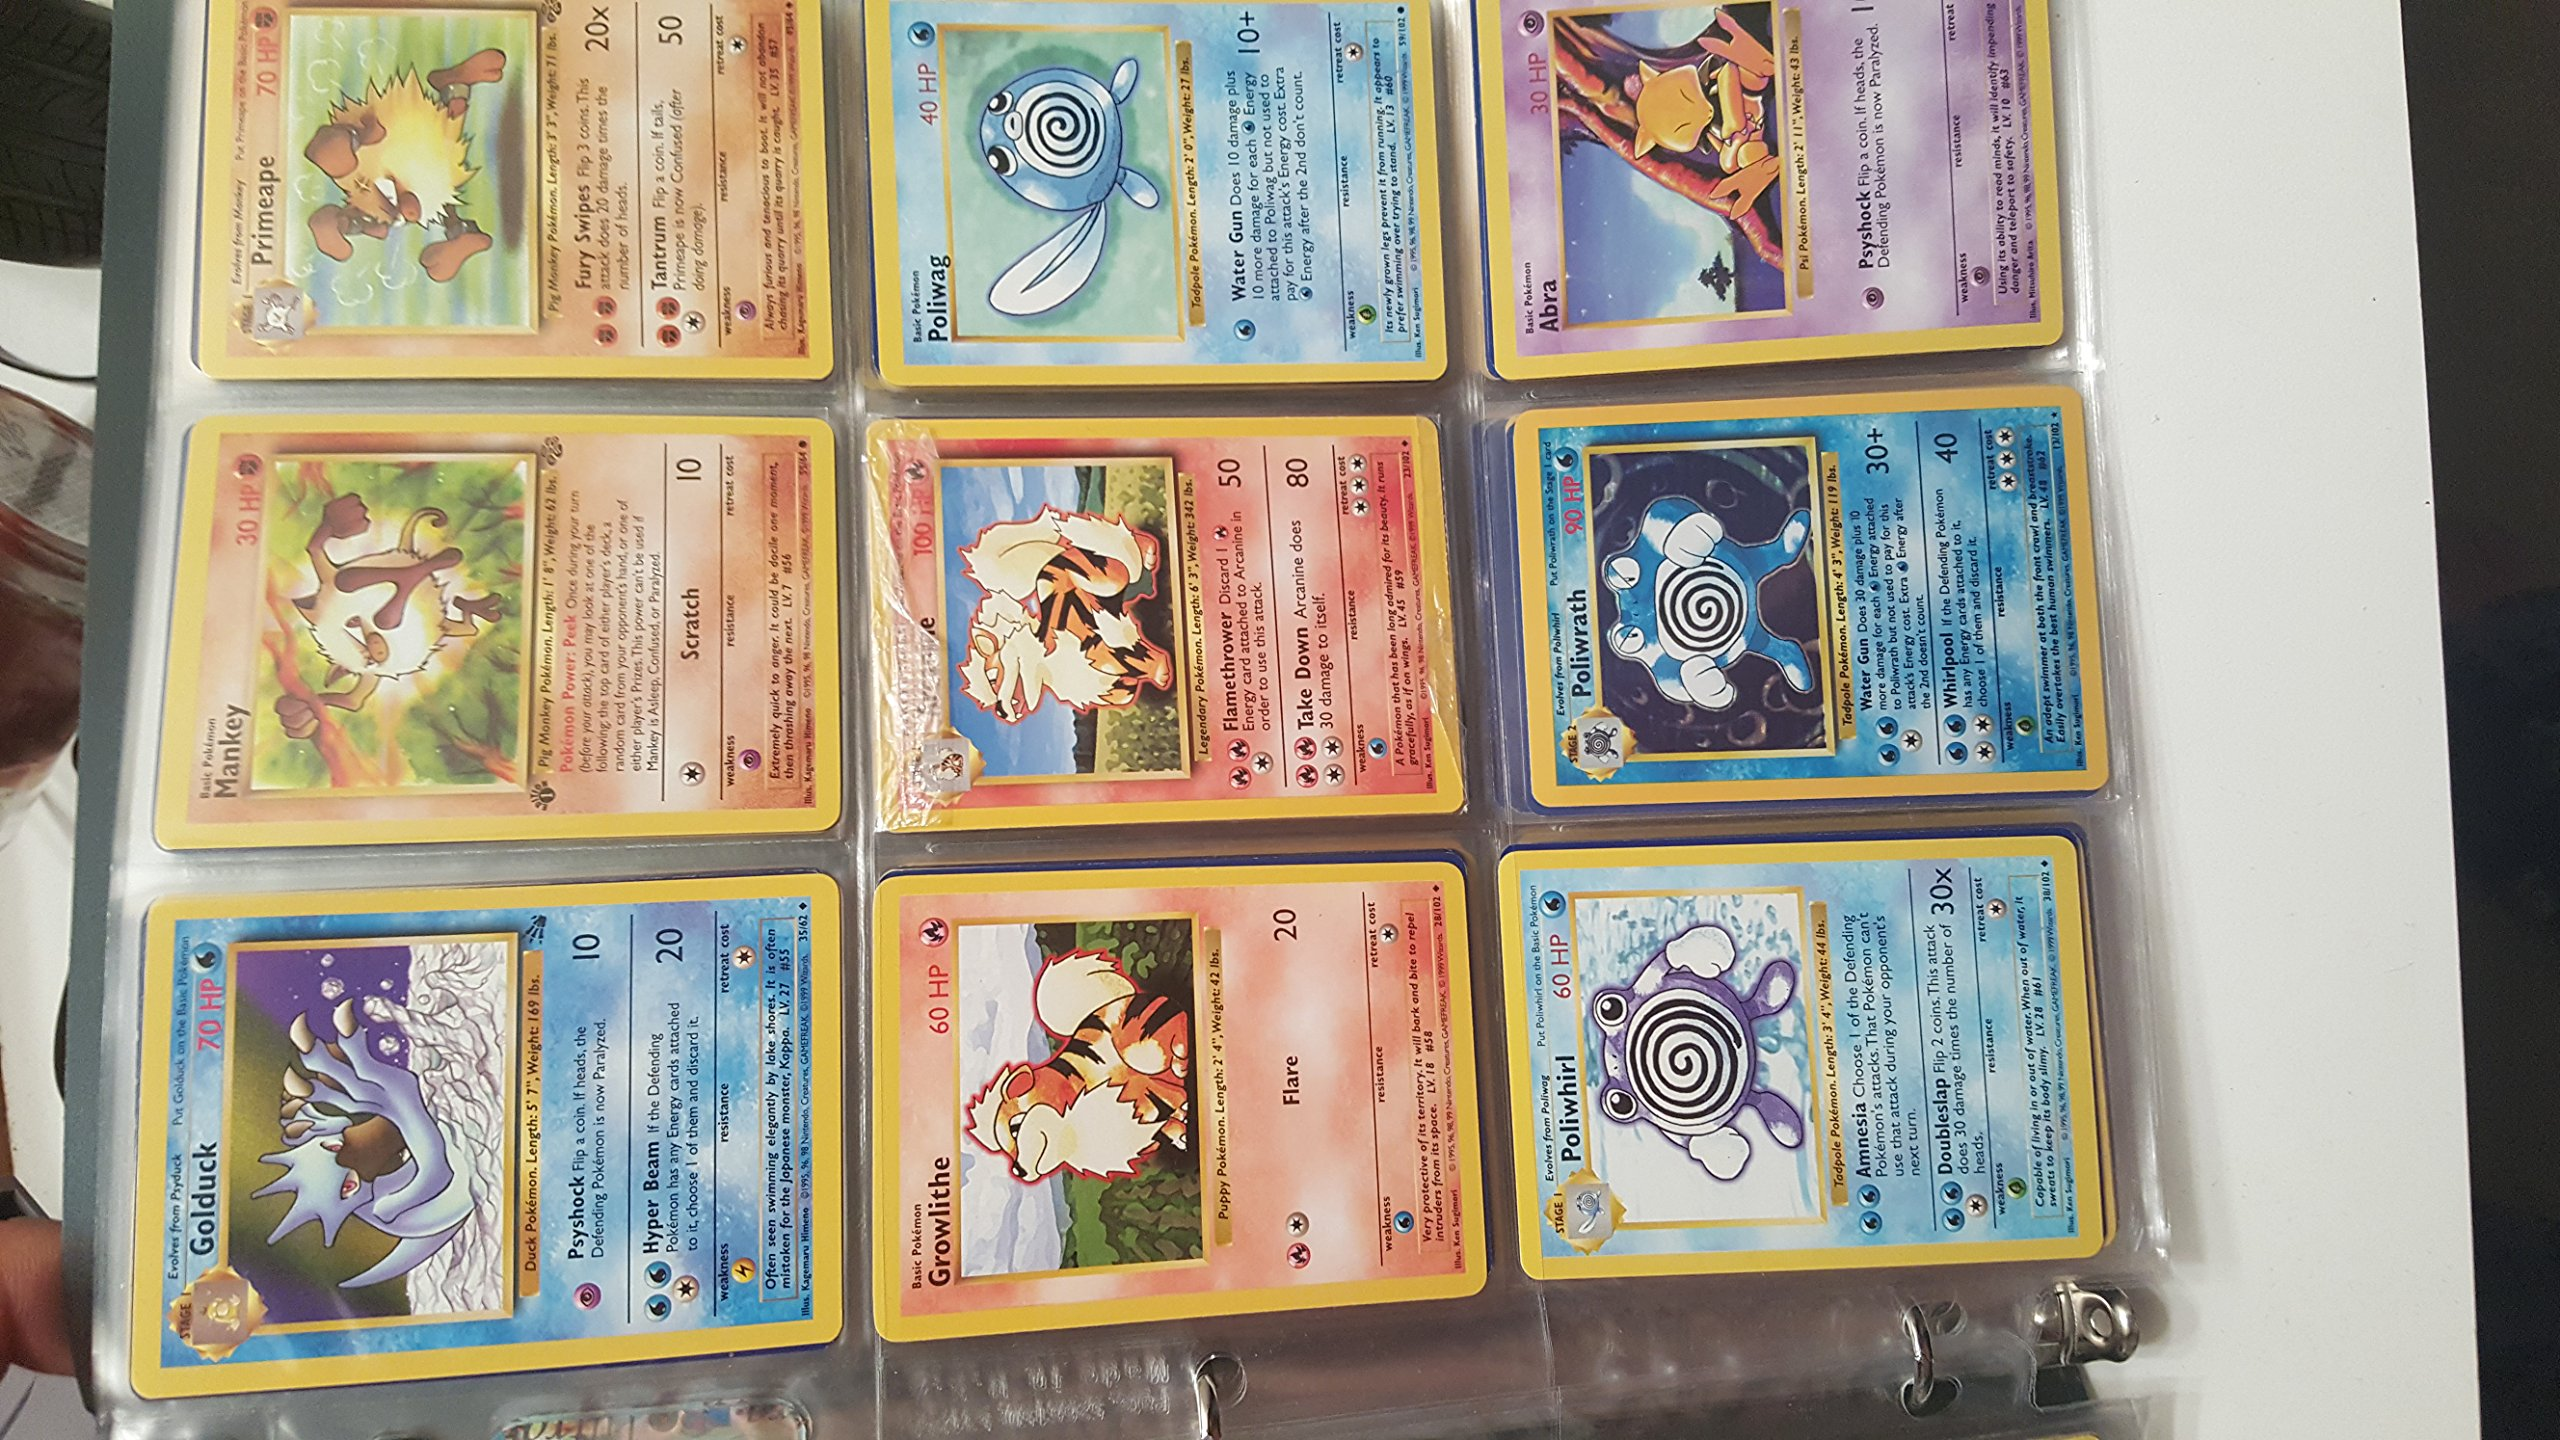 Pokemon COMPLETE Set of ORIGINAL 151/150 Cards (Contains Base, Jungle, Fossil Cards) by Pokemon (Image #7)